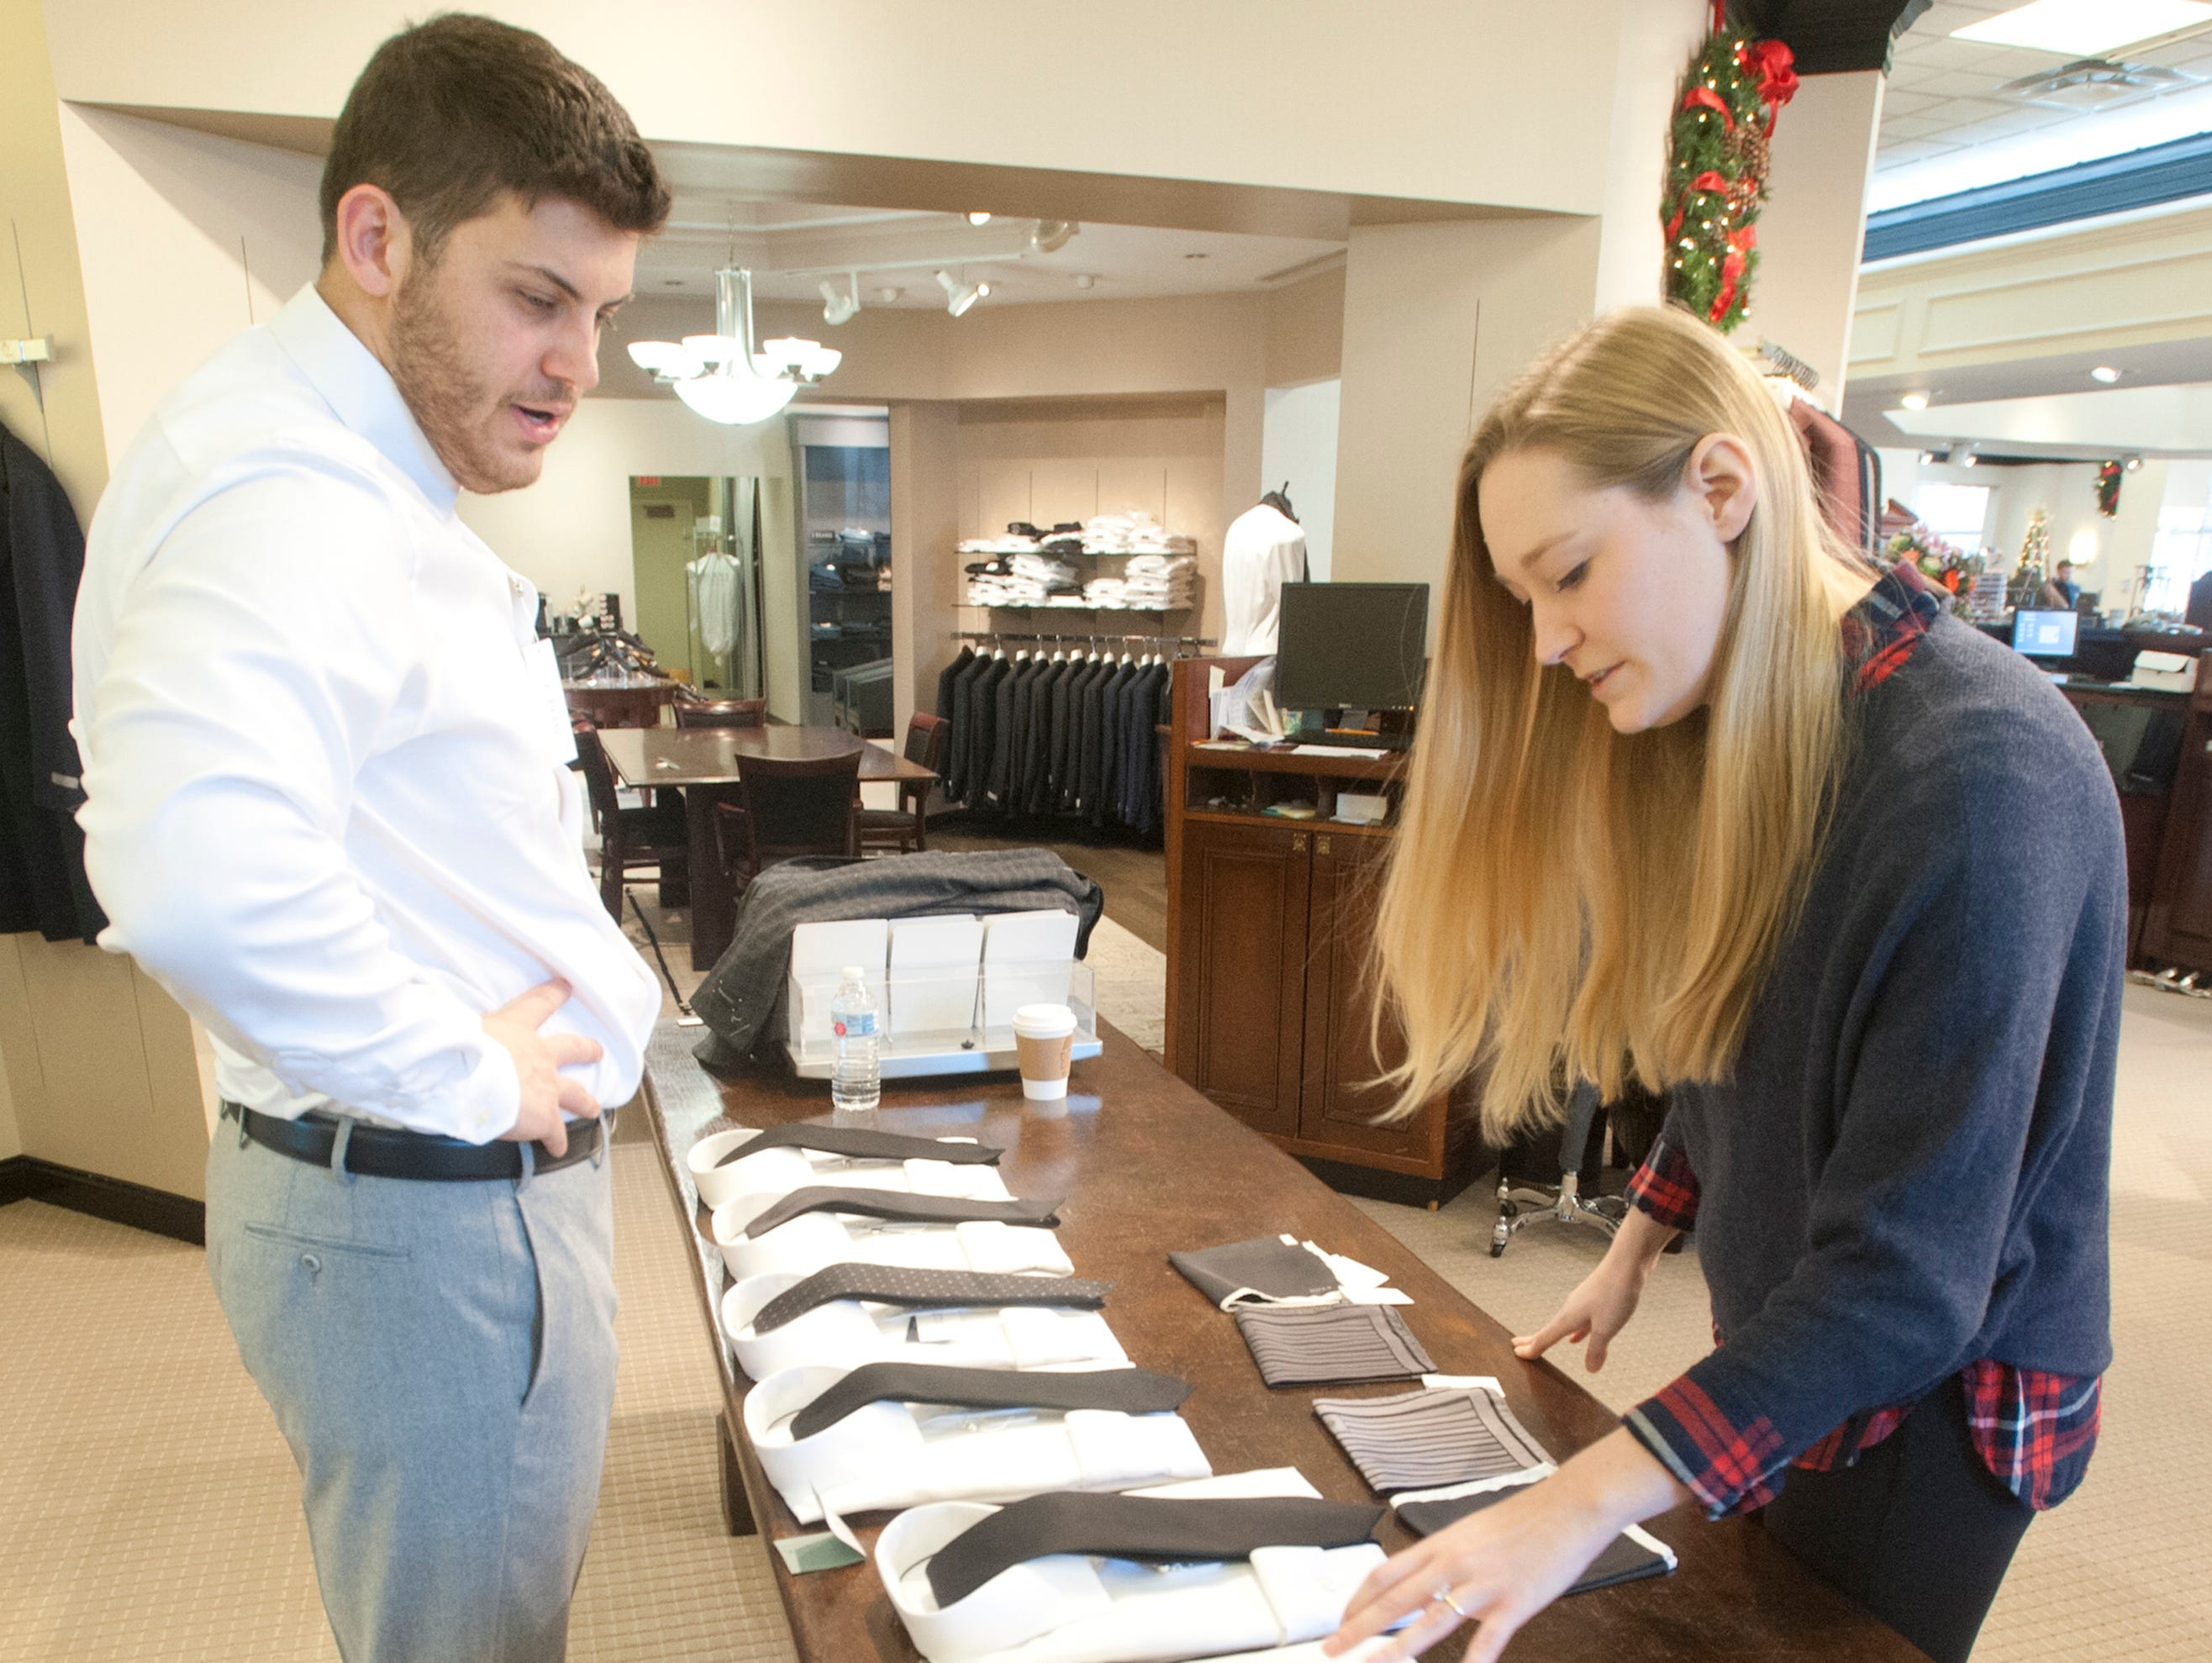 Morgan Davis and his fiancee Violet Downs select  ties and pocket scarves at the Rodes for Men store on Brownsboro Road. The couple, who plan to marry on December 29th, were in the store pick out clothes for him and for his groomsmen. This is the 5th generation of Davis' family to shop at Rodes.